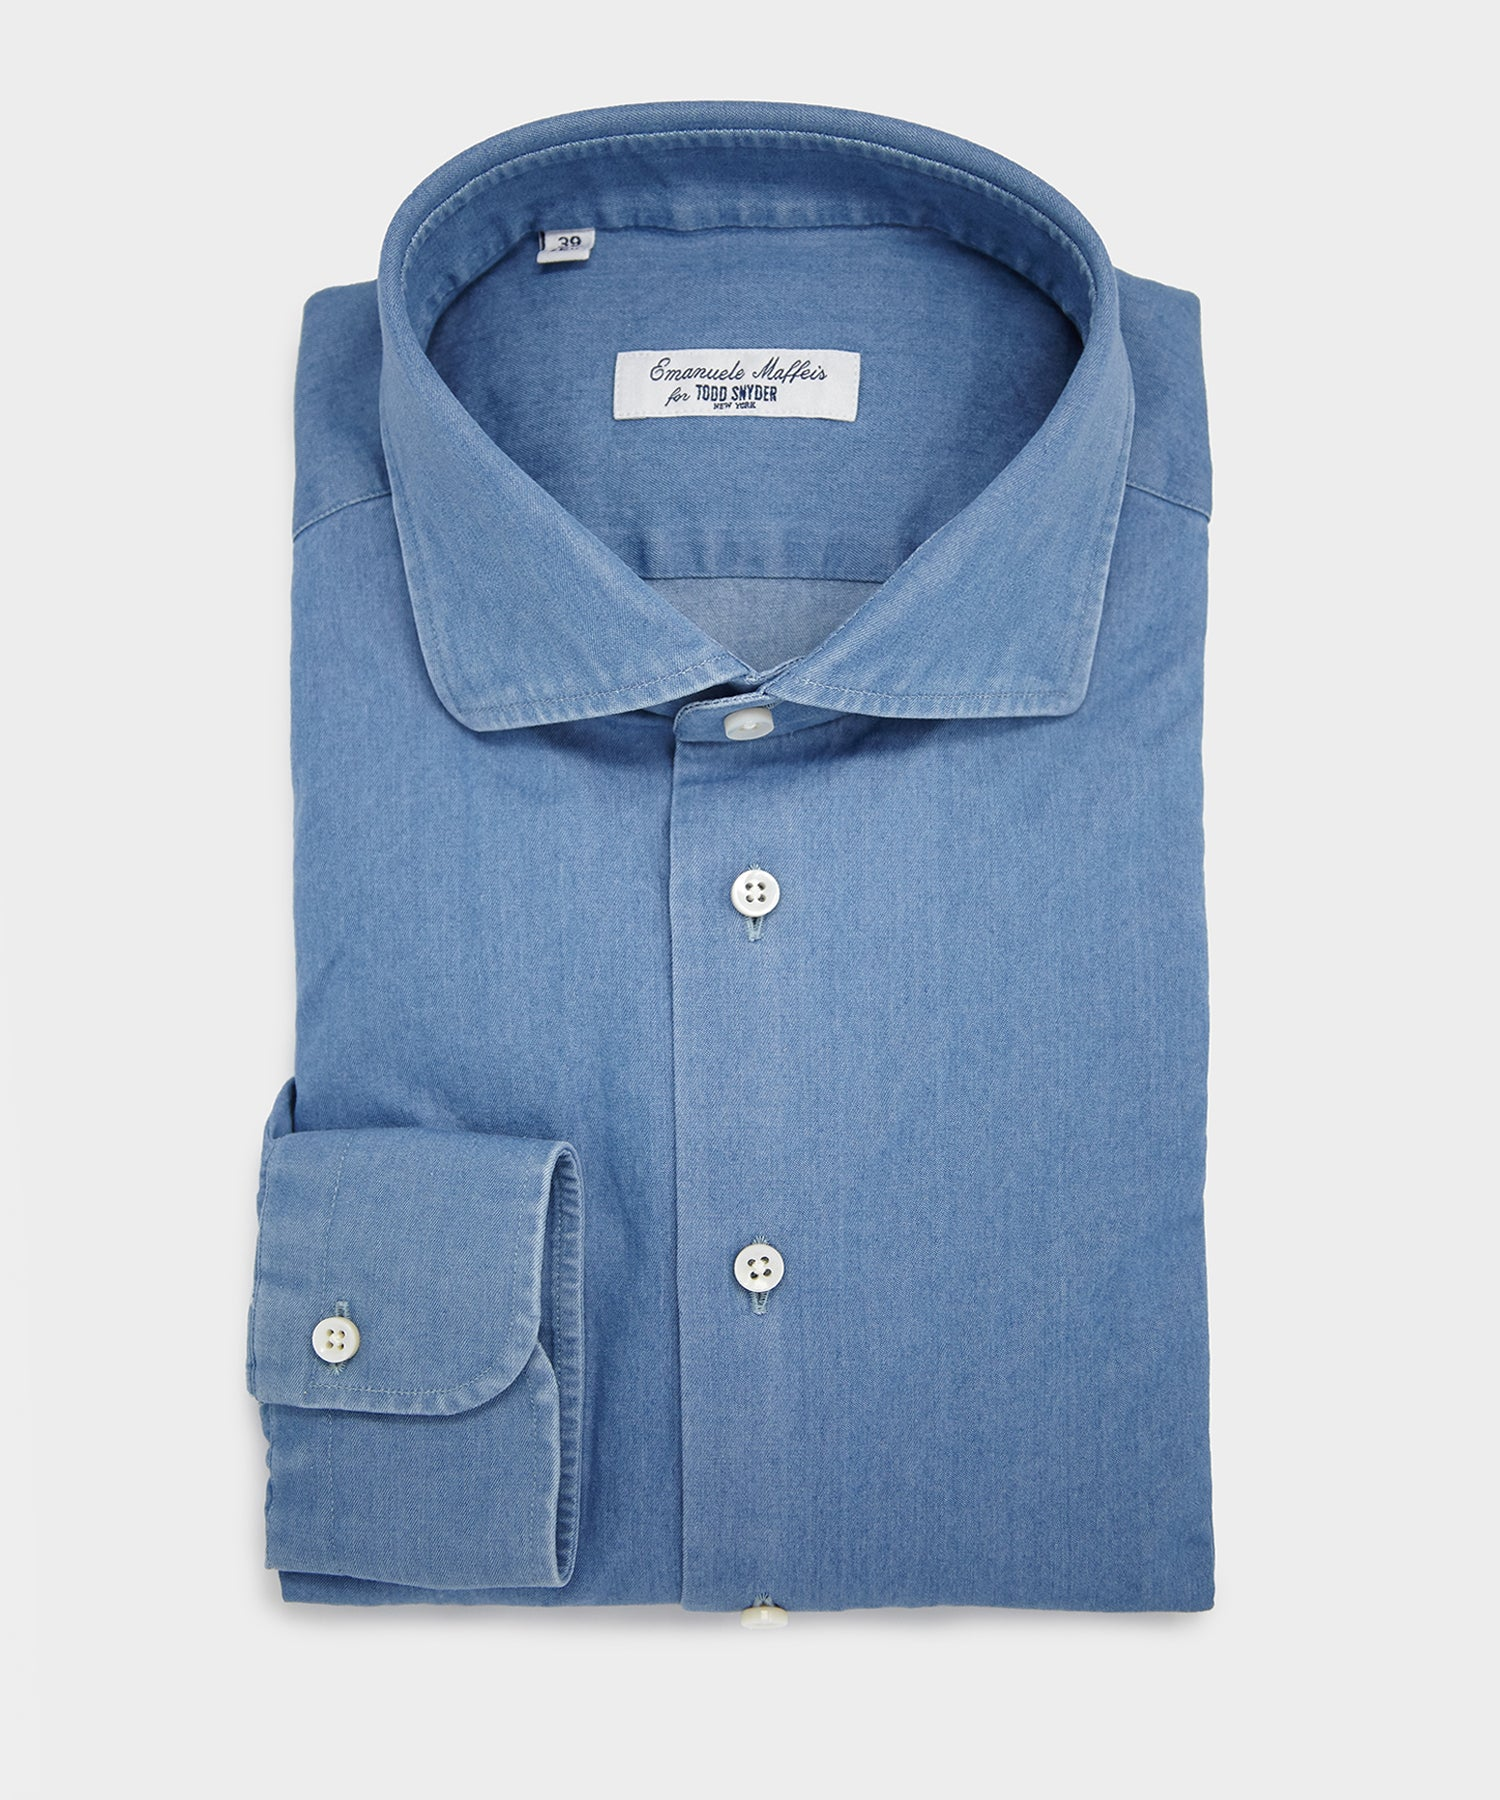 Emanuele Maffeis + Todd Snyder Denim Spread Collar Shirt